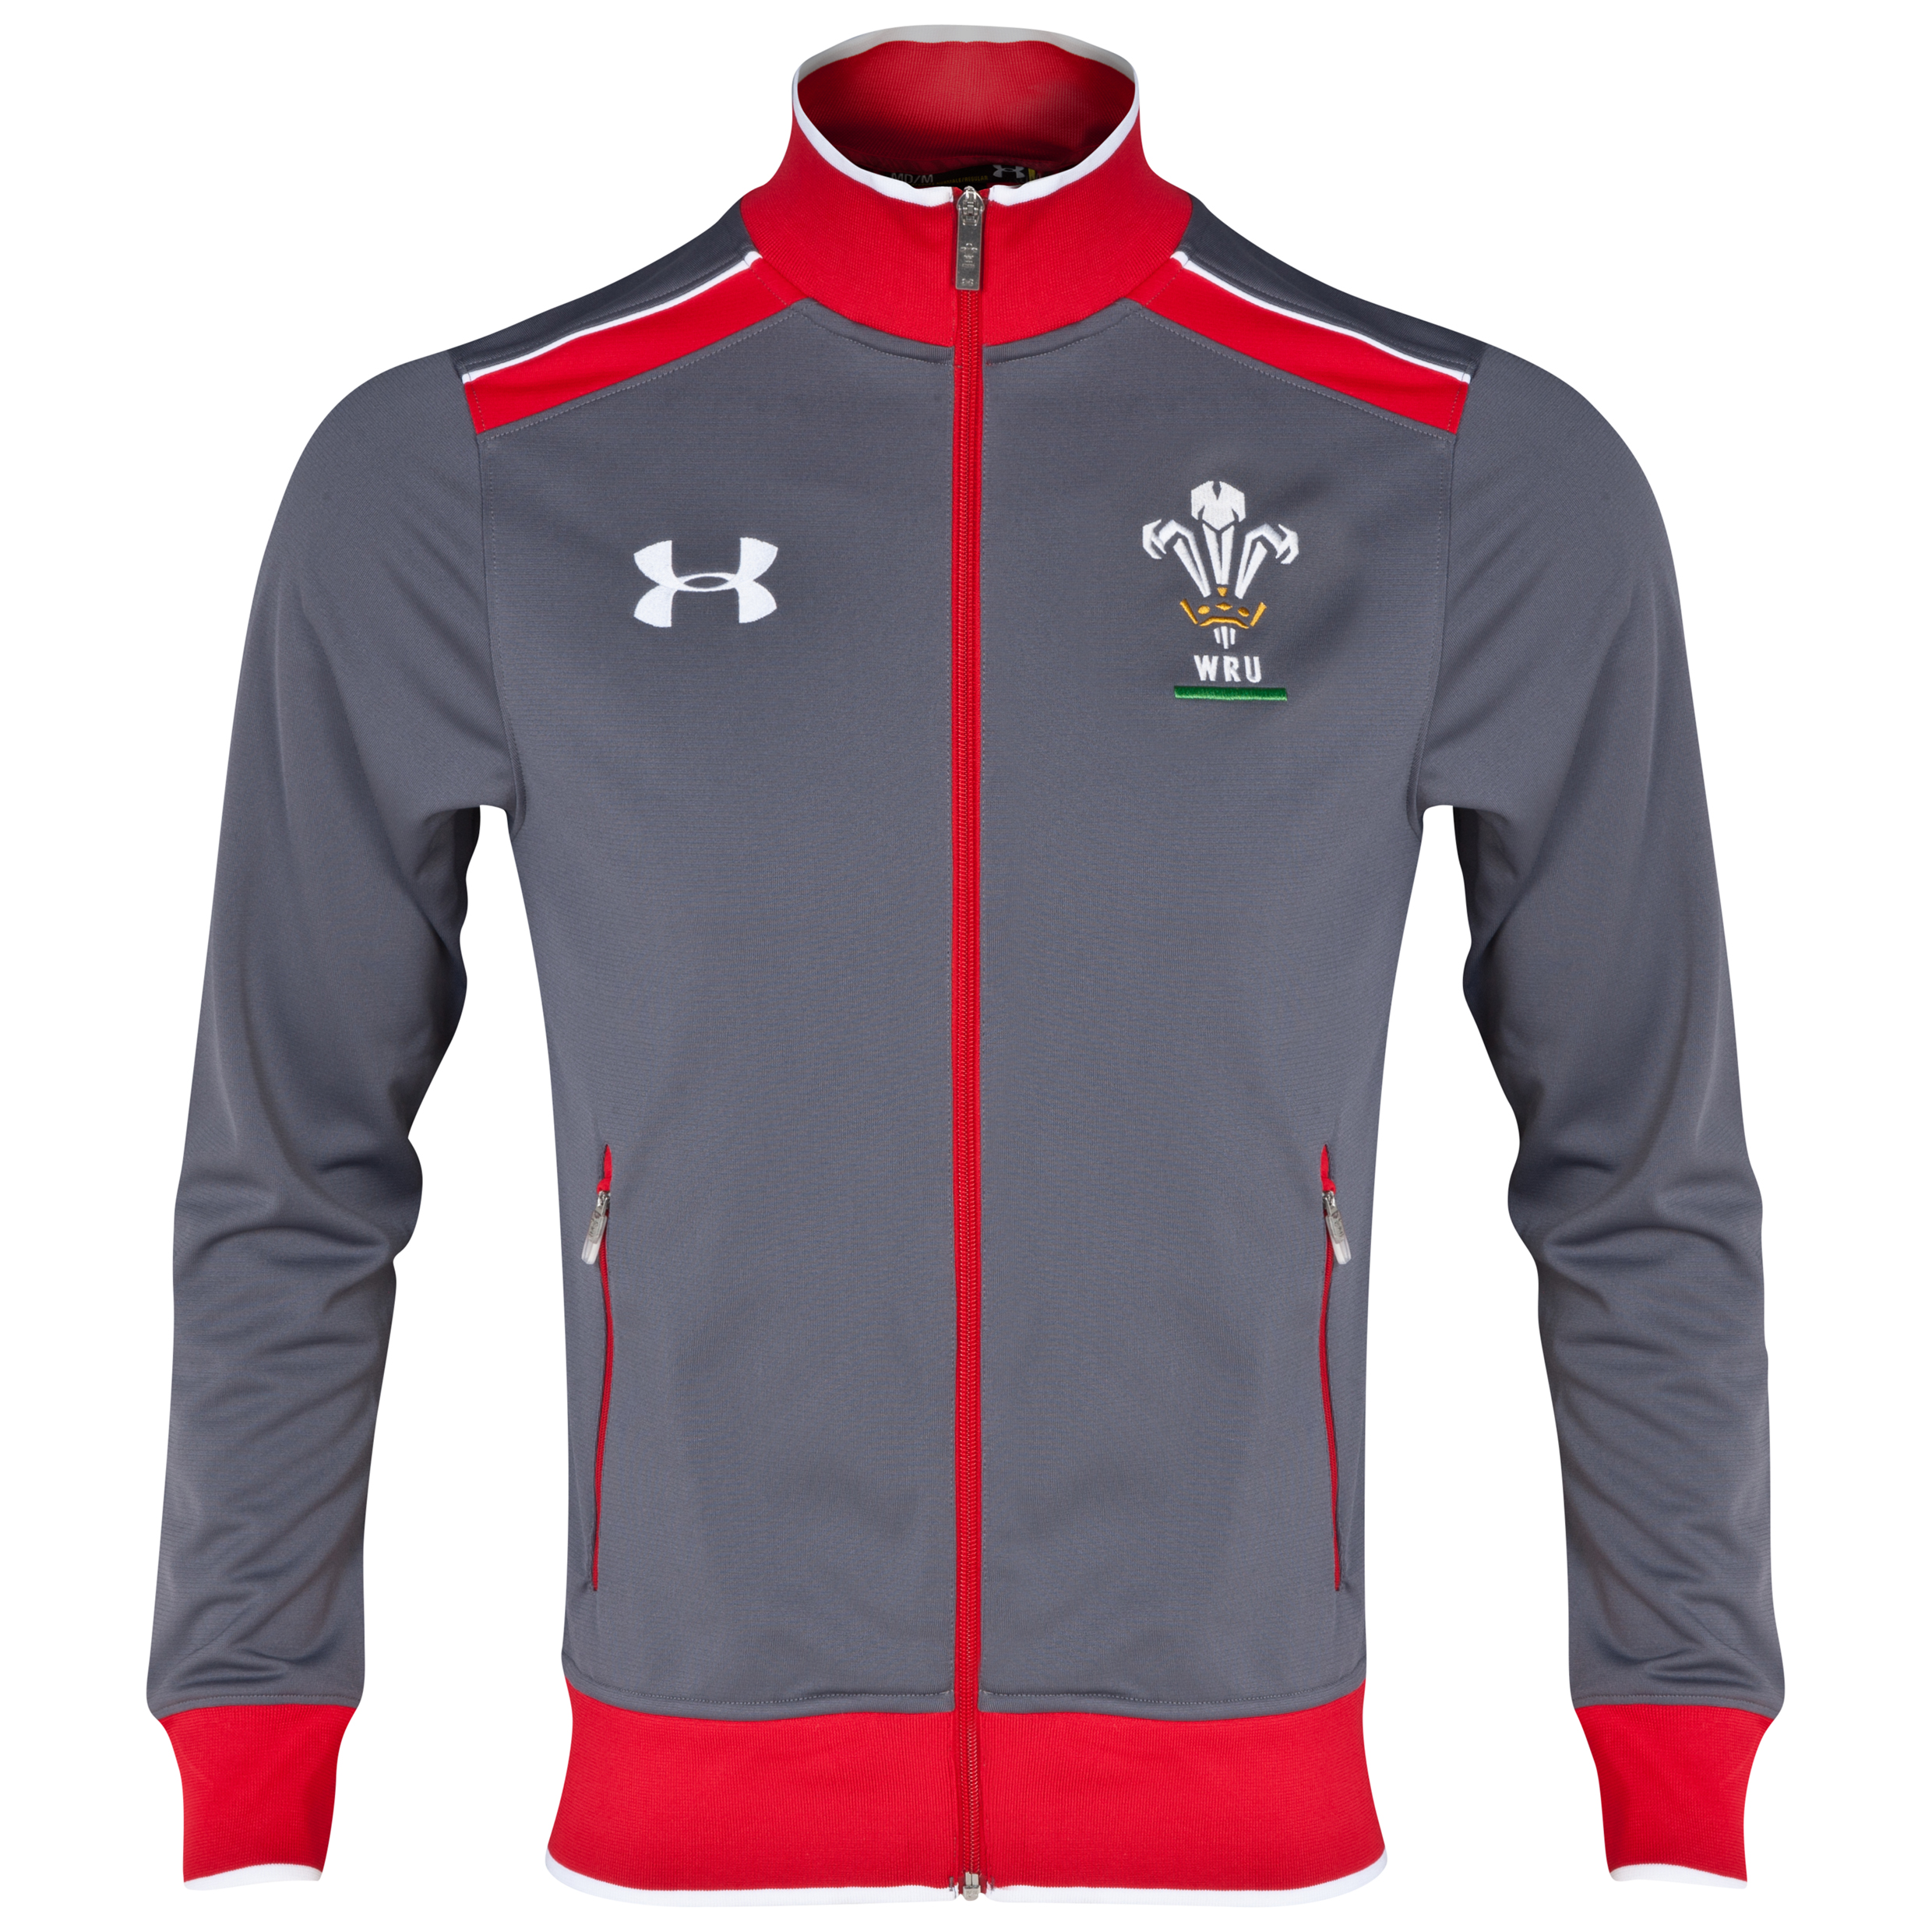 Wales Rugby Union Anthem Jacket 2013/15 - Graphite/Red/White